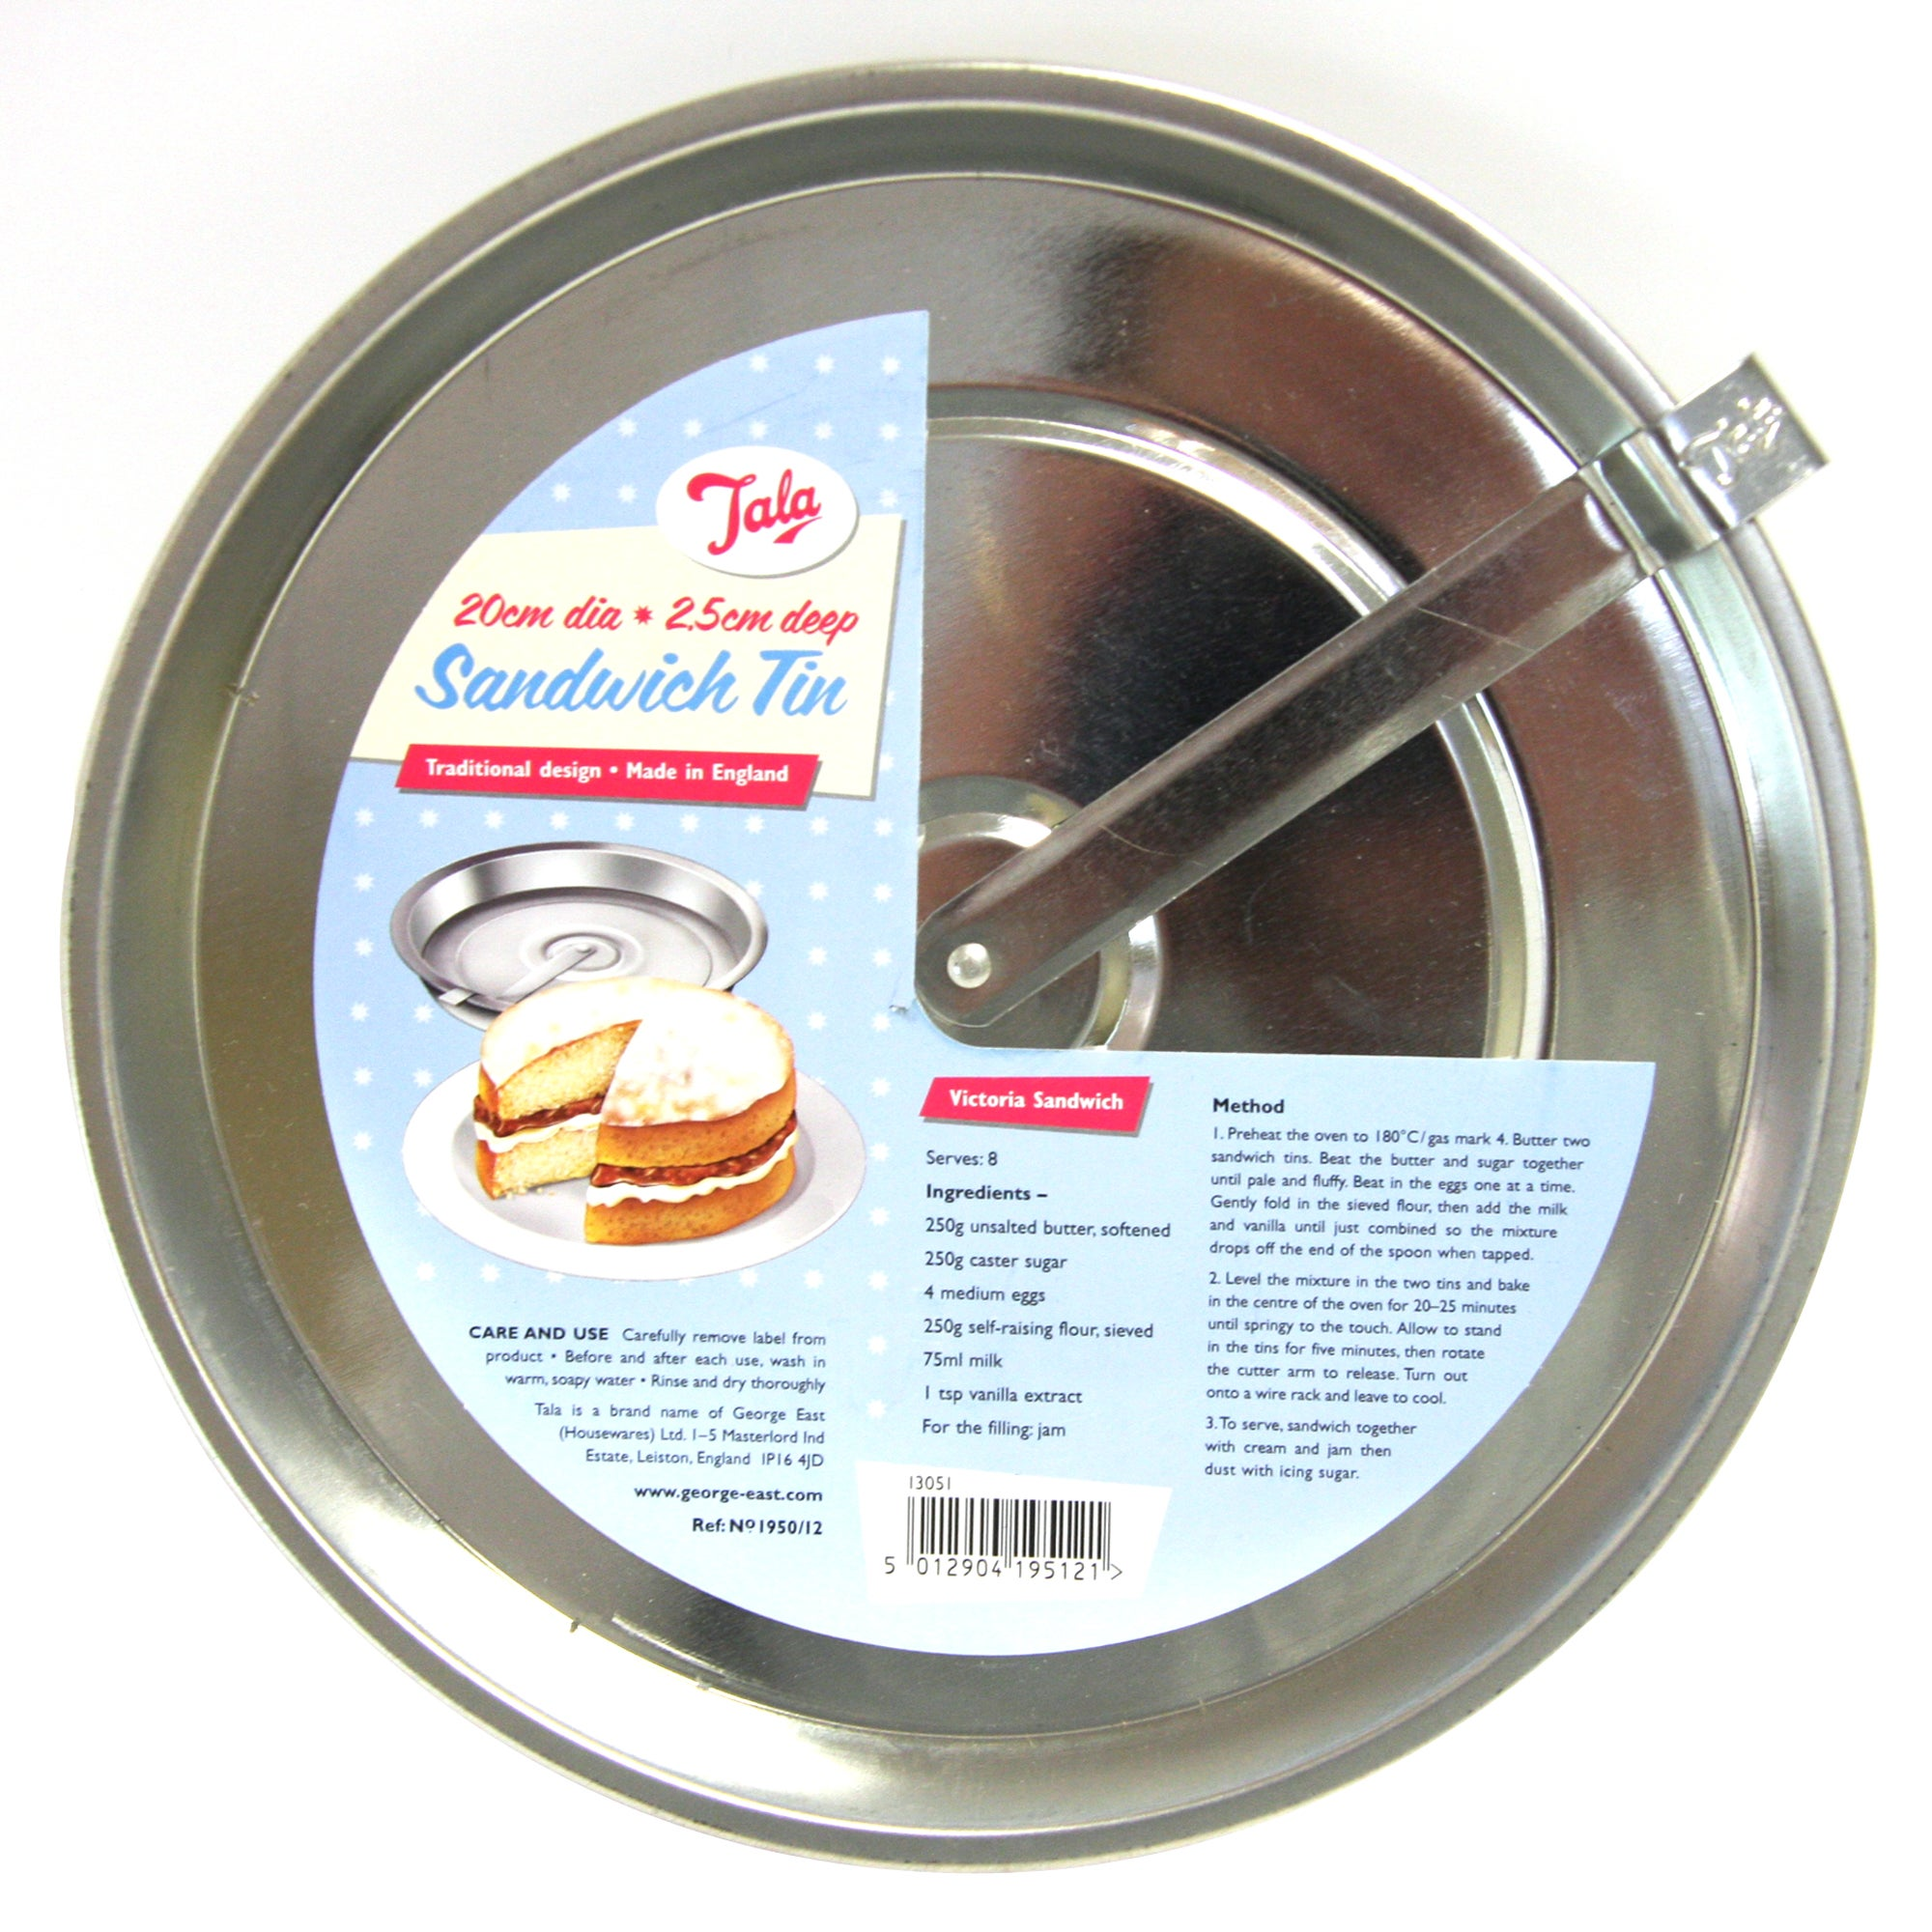 Tala Clean Cut Sandwich Tin